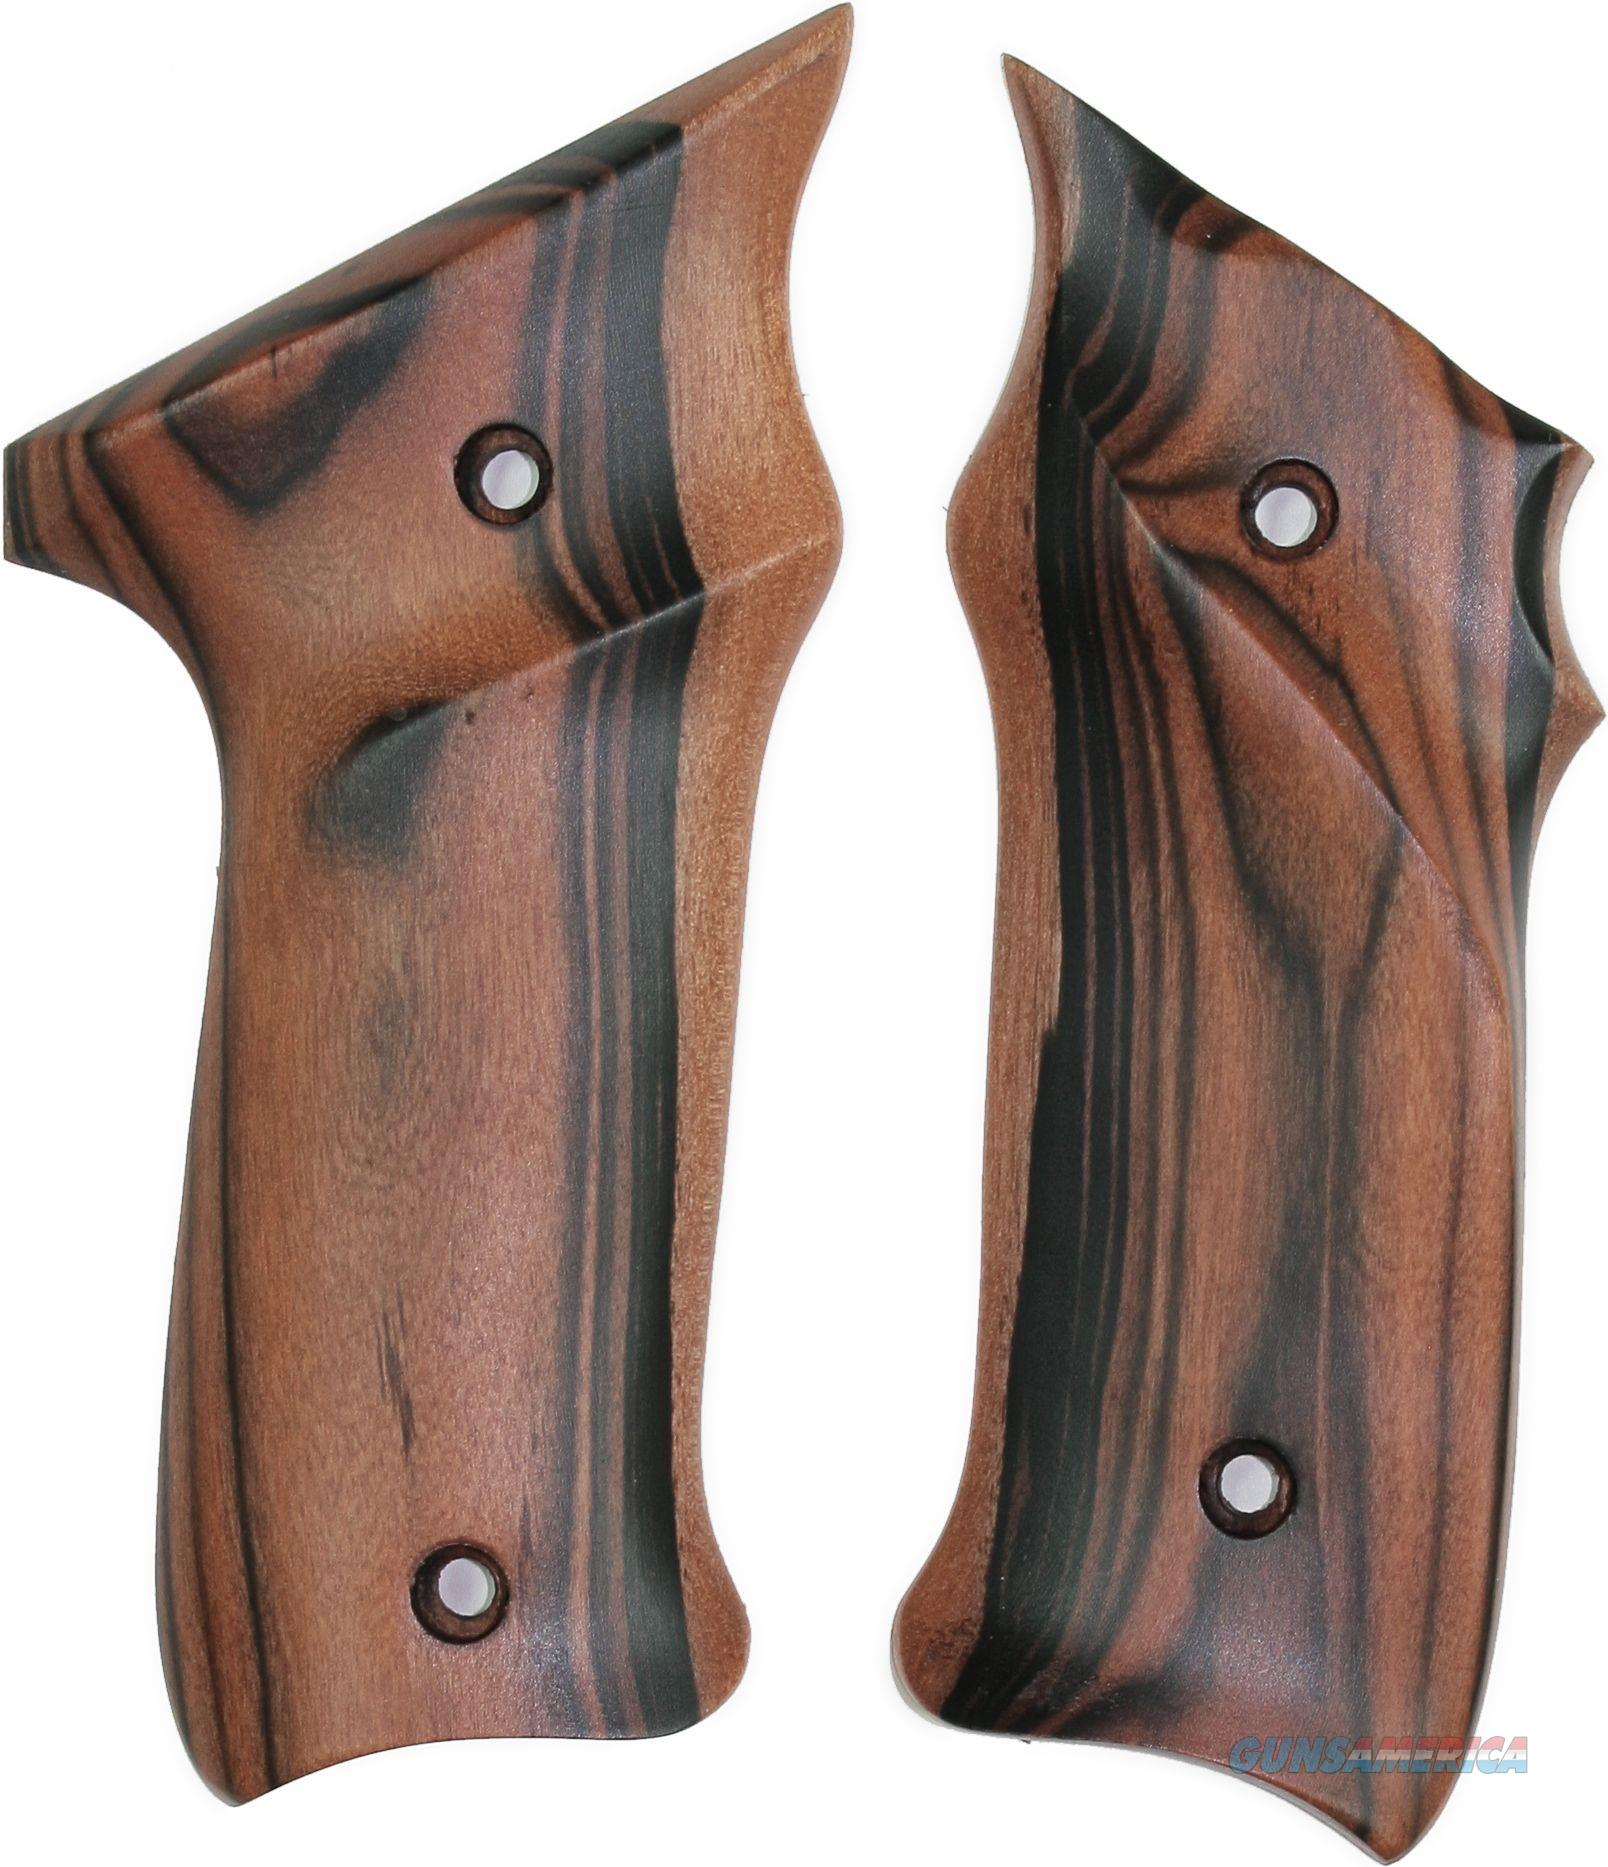 Ruger MKII .22 Auto Tigerwood Grips  Non-Guns > Gun Parts > Grips > Other